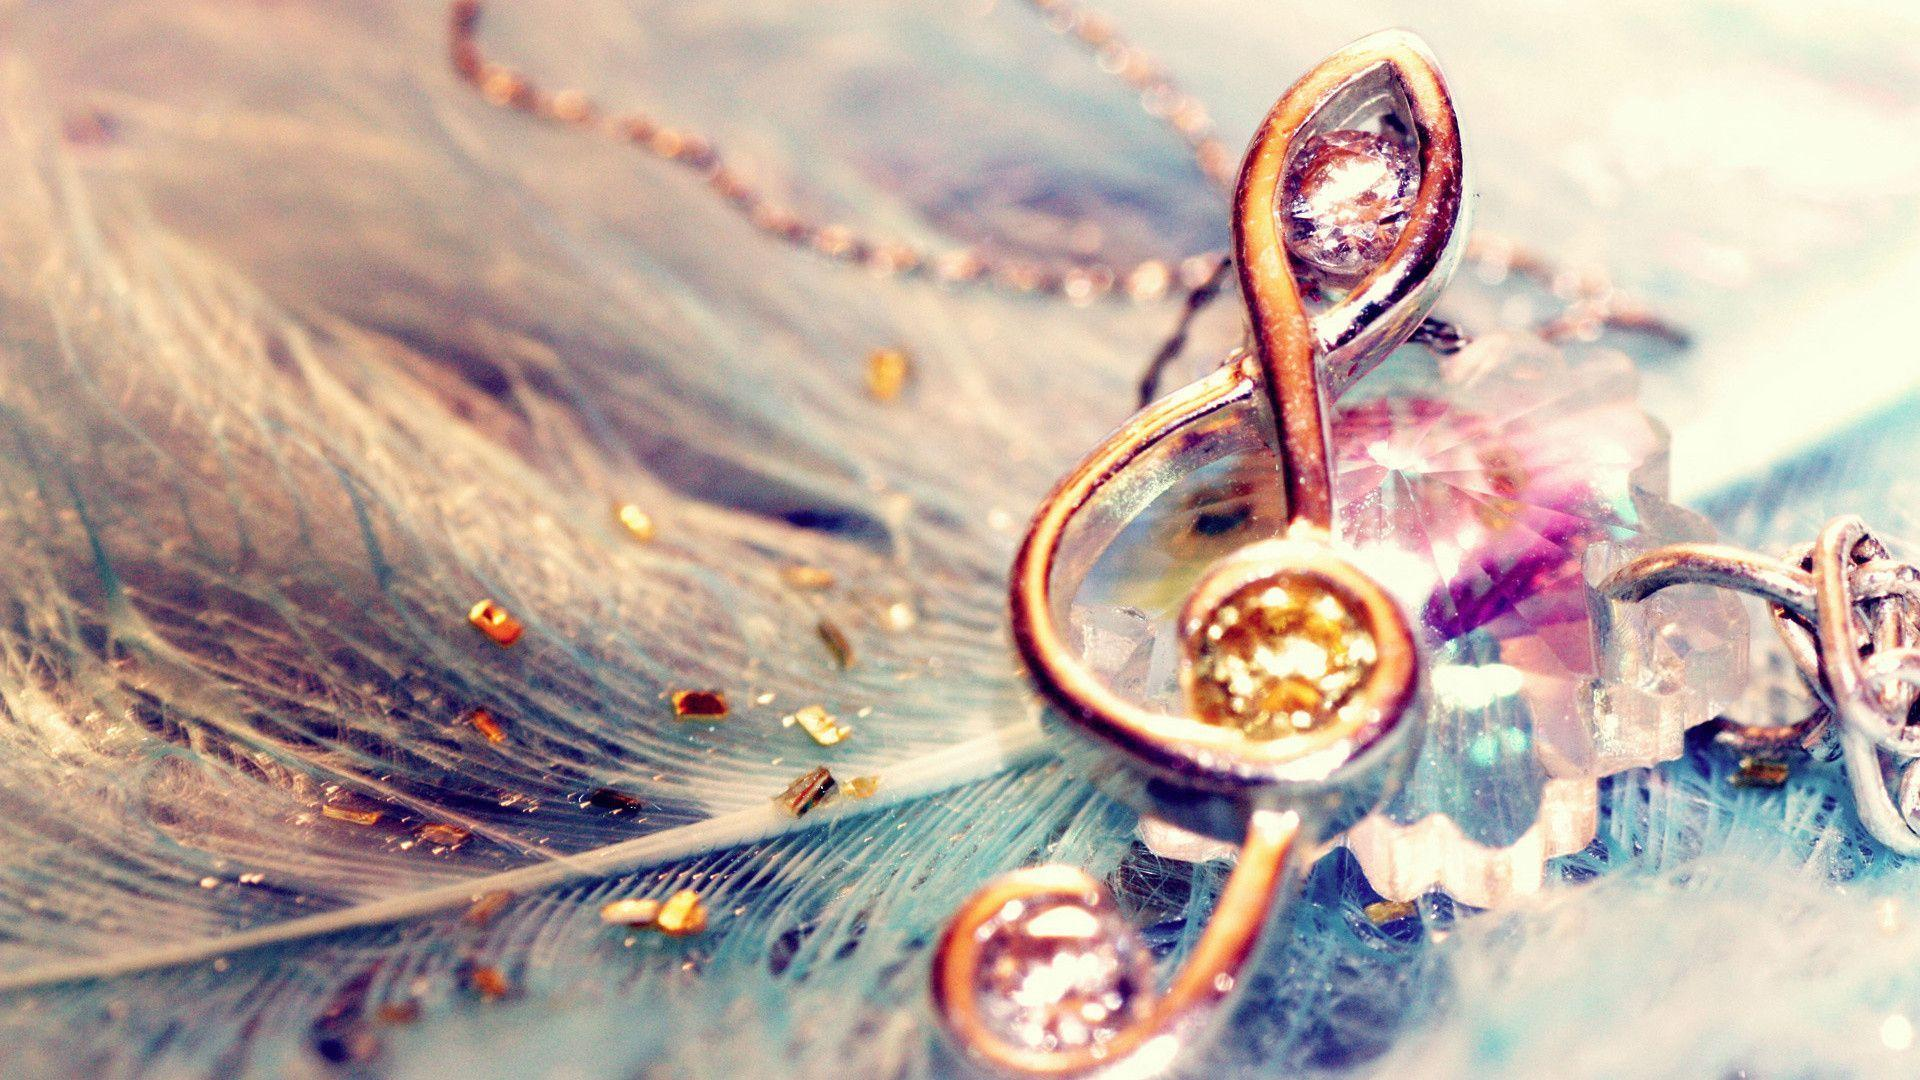 Musical Note Wallpapers Wallpaper Cave